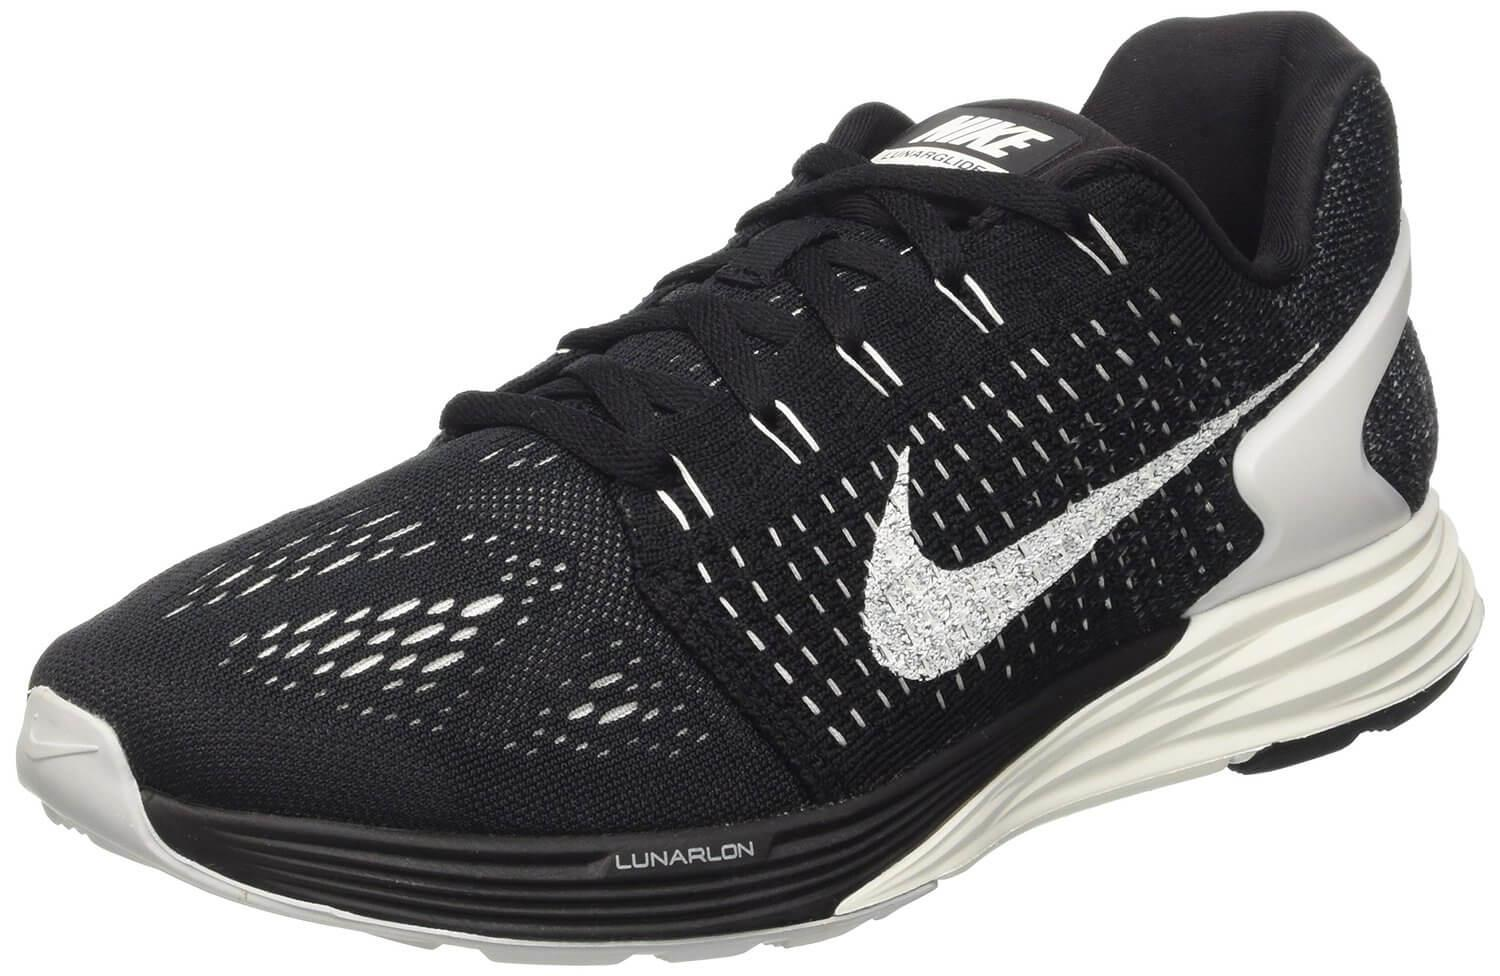 c99f9e7148a2 Nike LunarGlide 7 Reviewed - To Buy or Not in Apr 2019